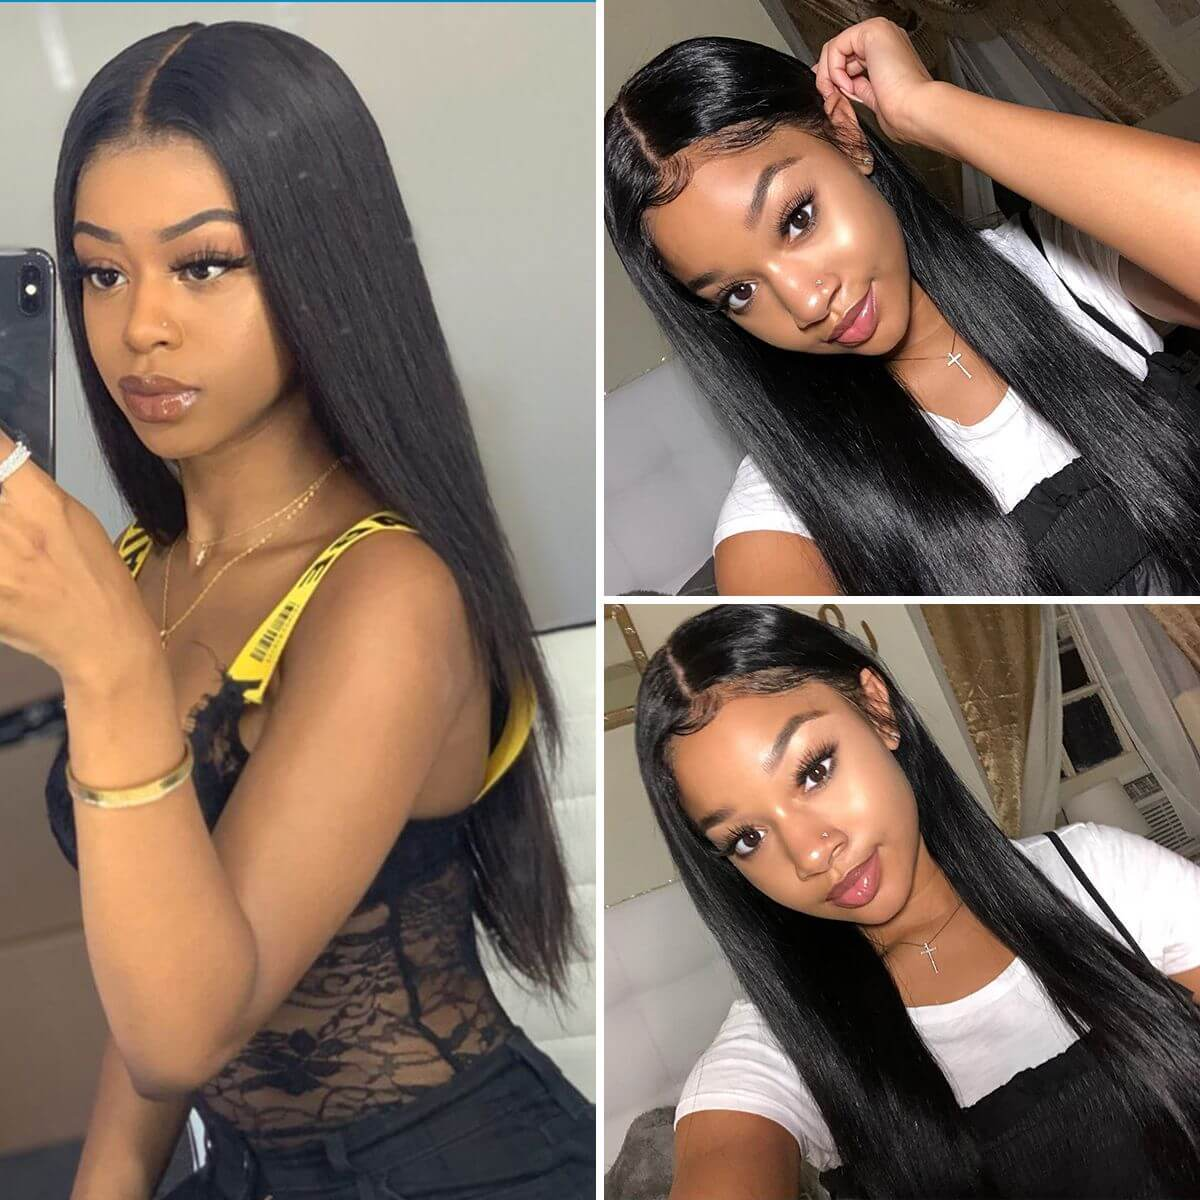 straight front wig,lace frontal wigs,lace front wigs,13×6 lace frontal wigs,frontal straight wig,straight hair wig,cheap straight wig